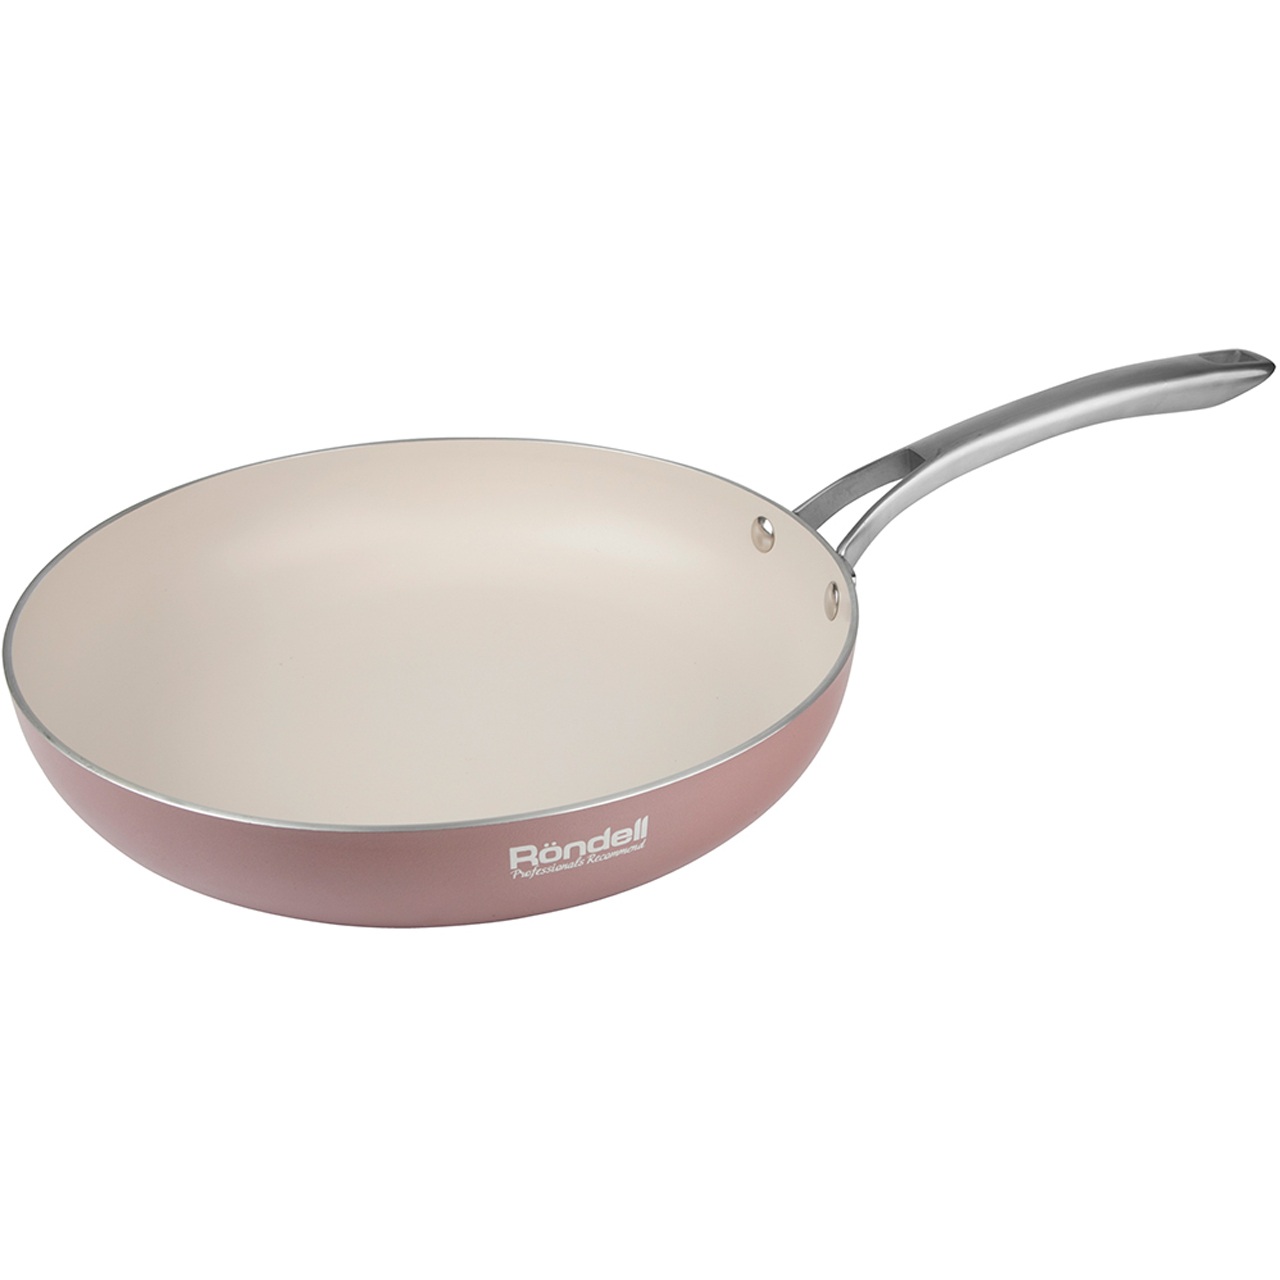 Frying pan without lid Rondell Rosso 26 cm RDA-544 все цены